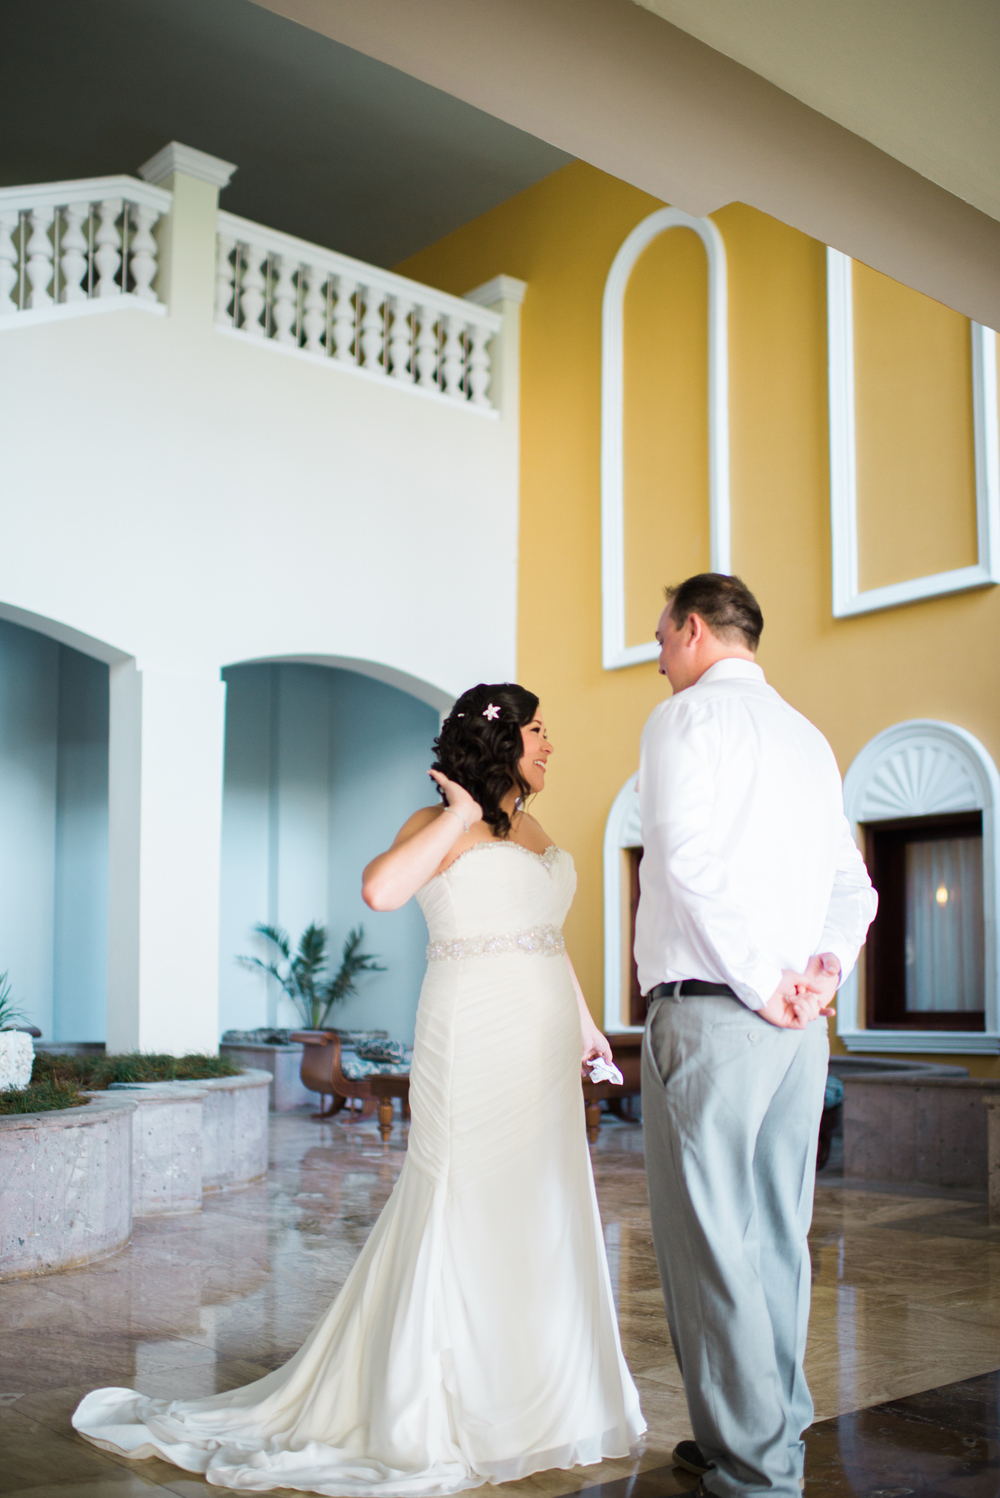 JadeandRyan-Montego-Bay-Jamaica-Wedding-Iberostar-Resort-Beach-36.jpg